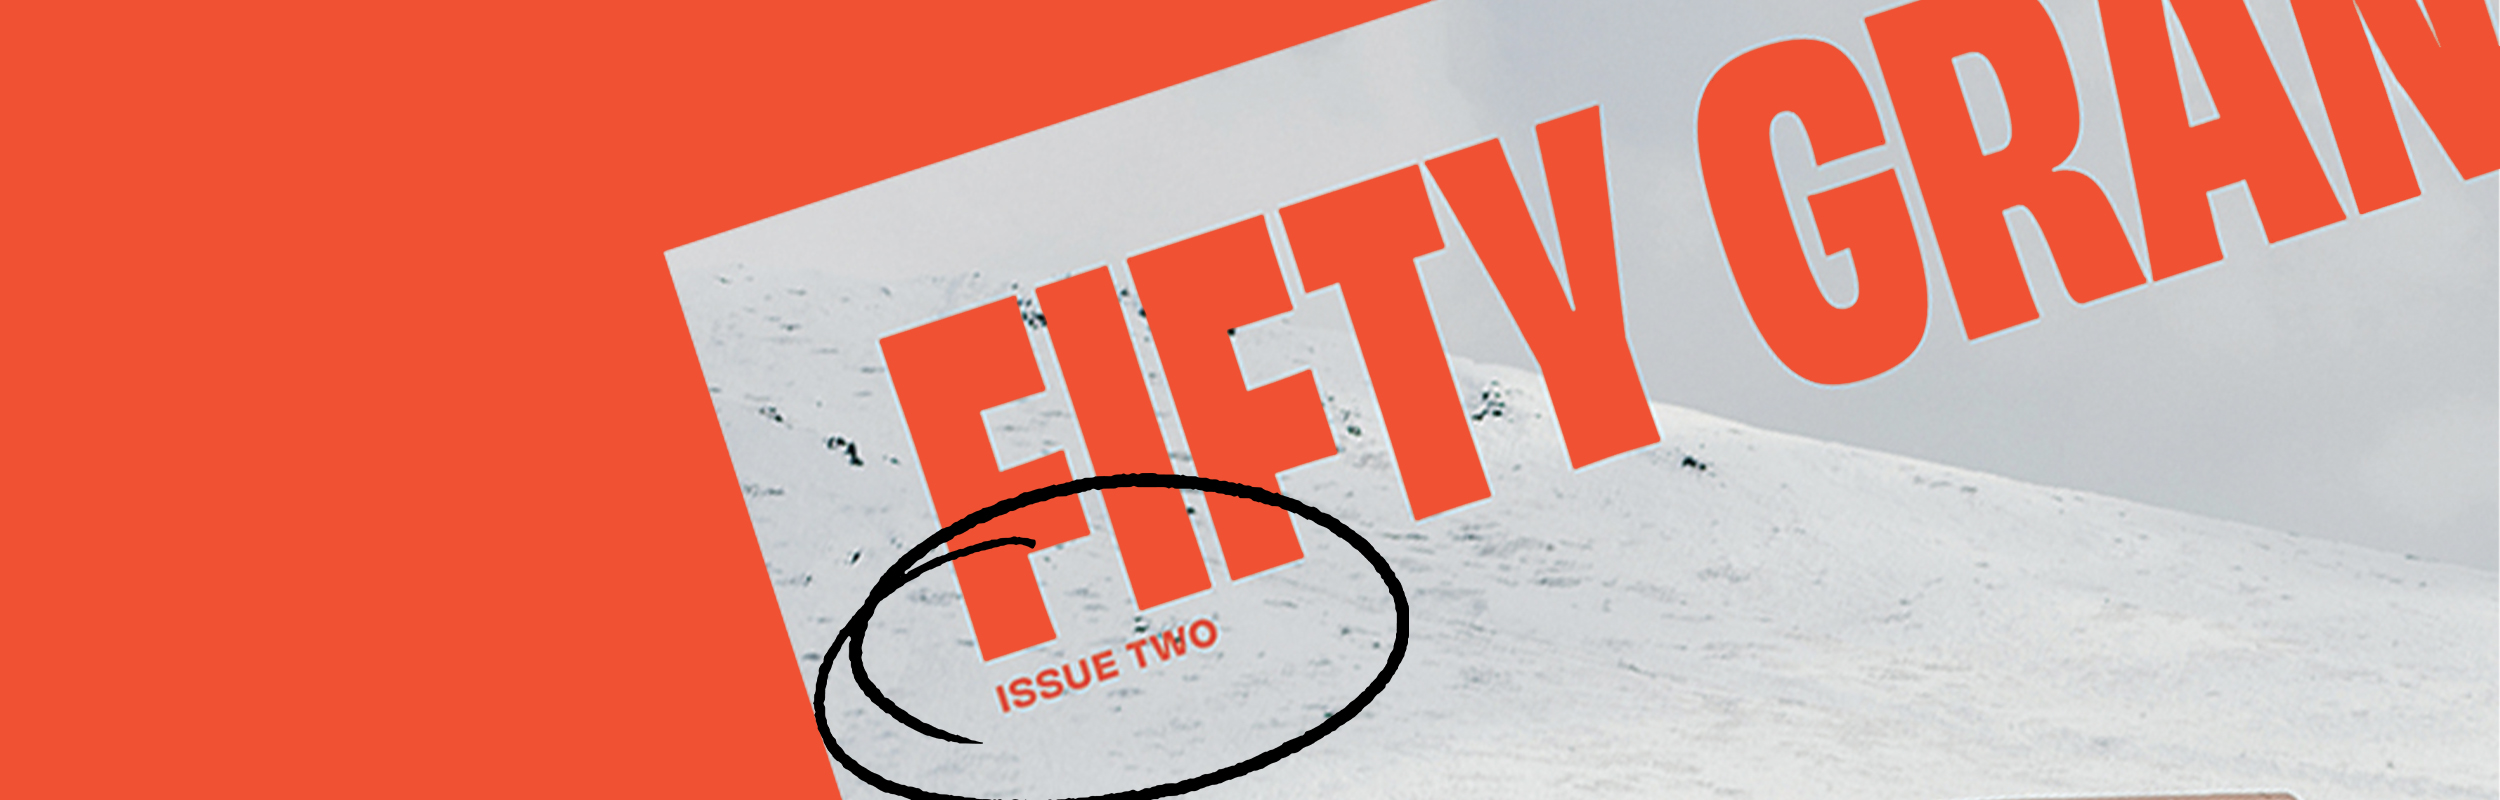 Fifty Grande Shop - issue #2 is on sale now.